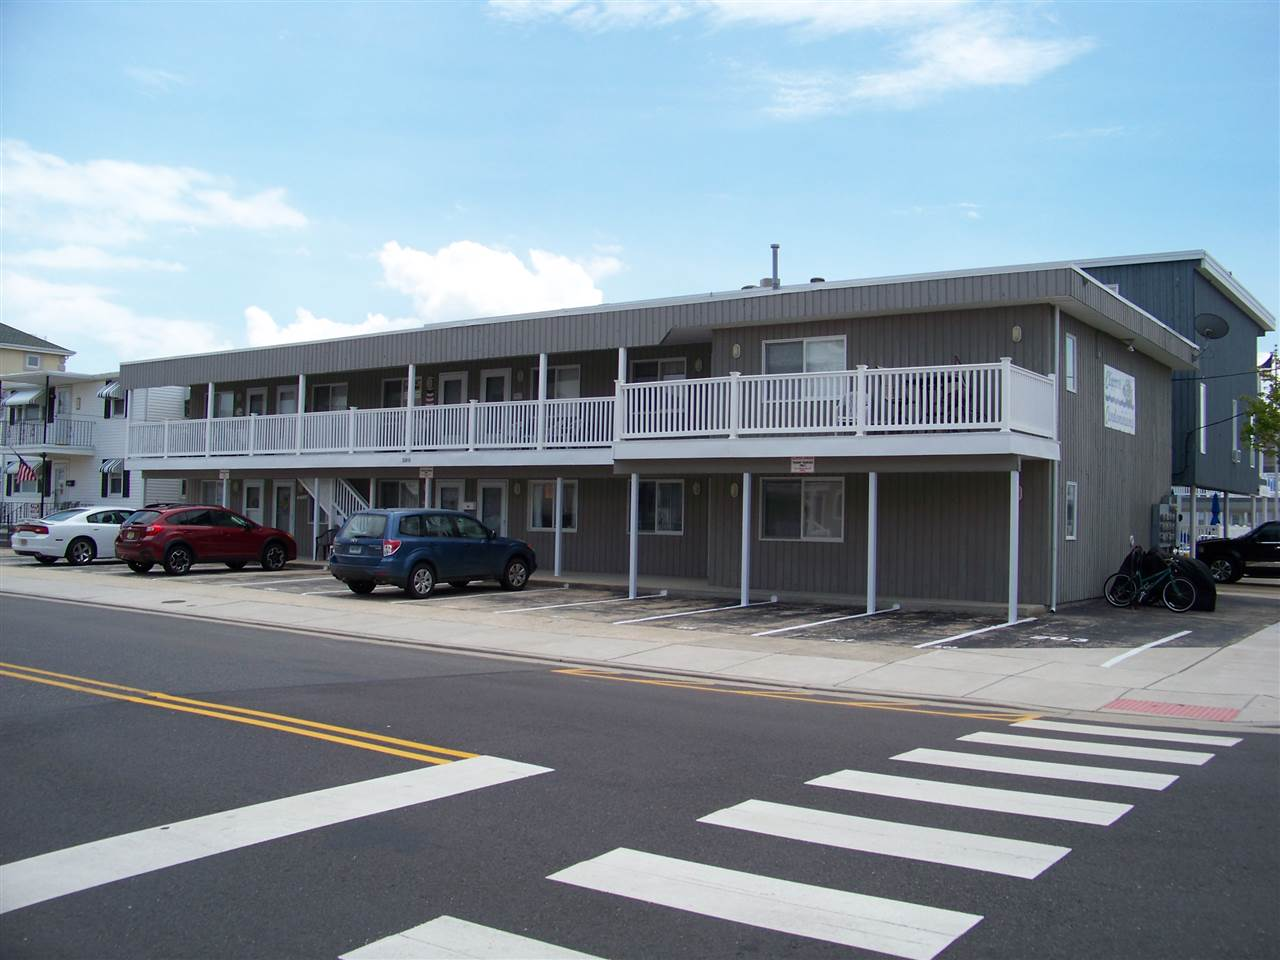 500, Unit #209 13th Ave, North Wildwood